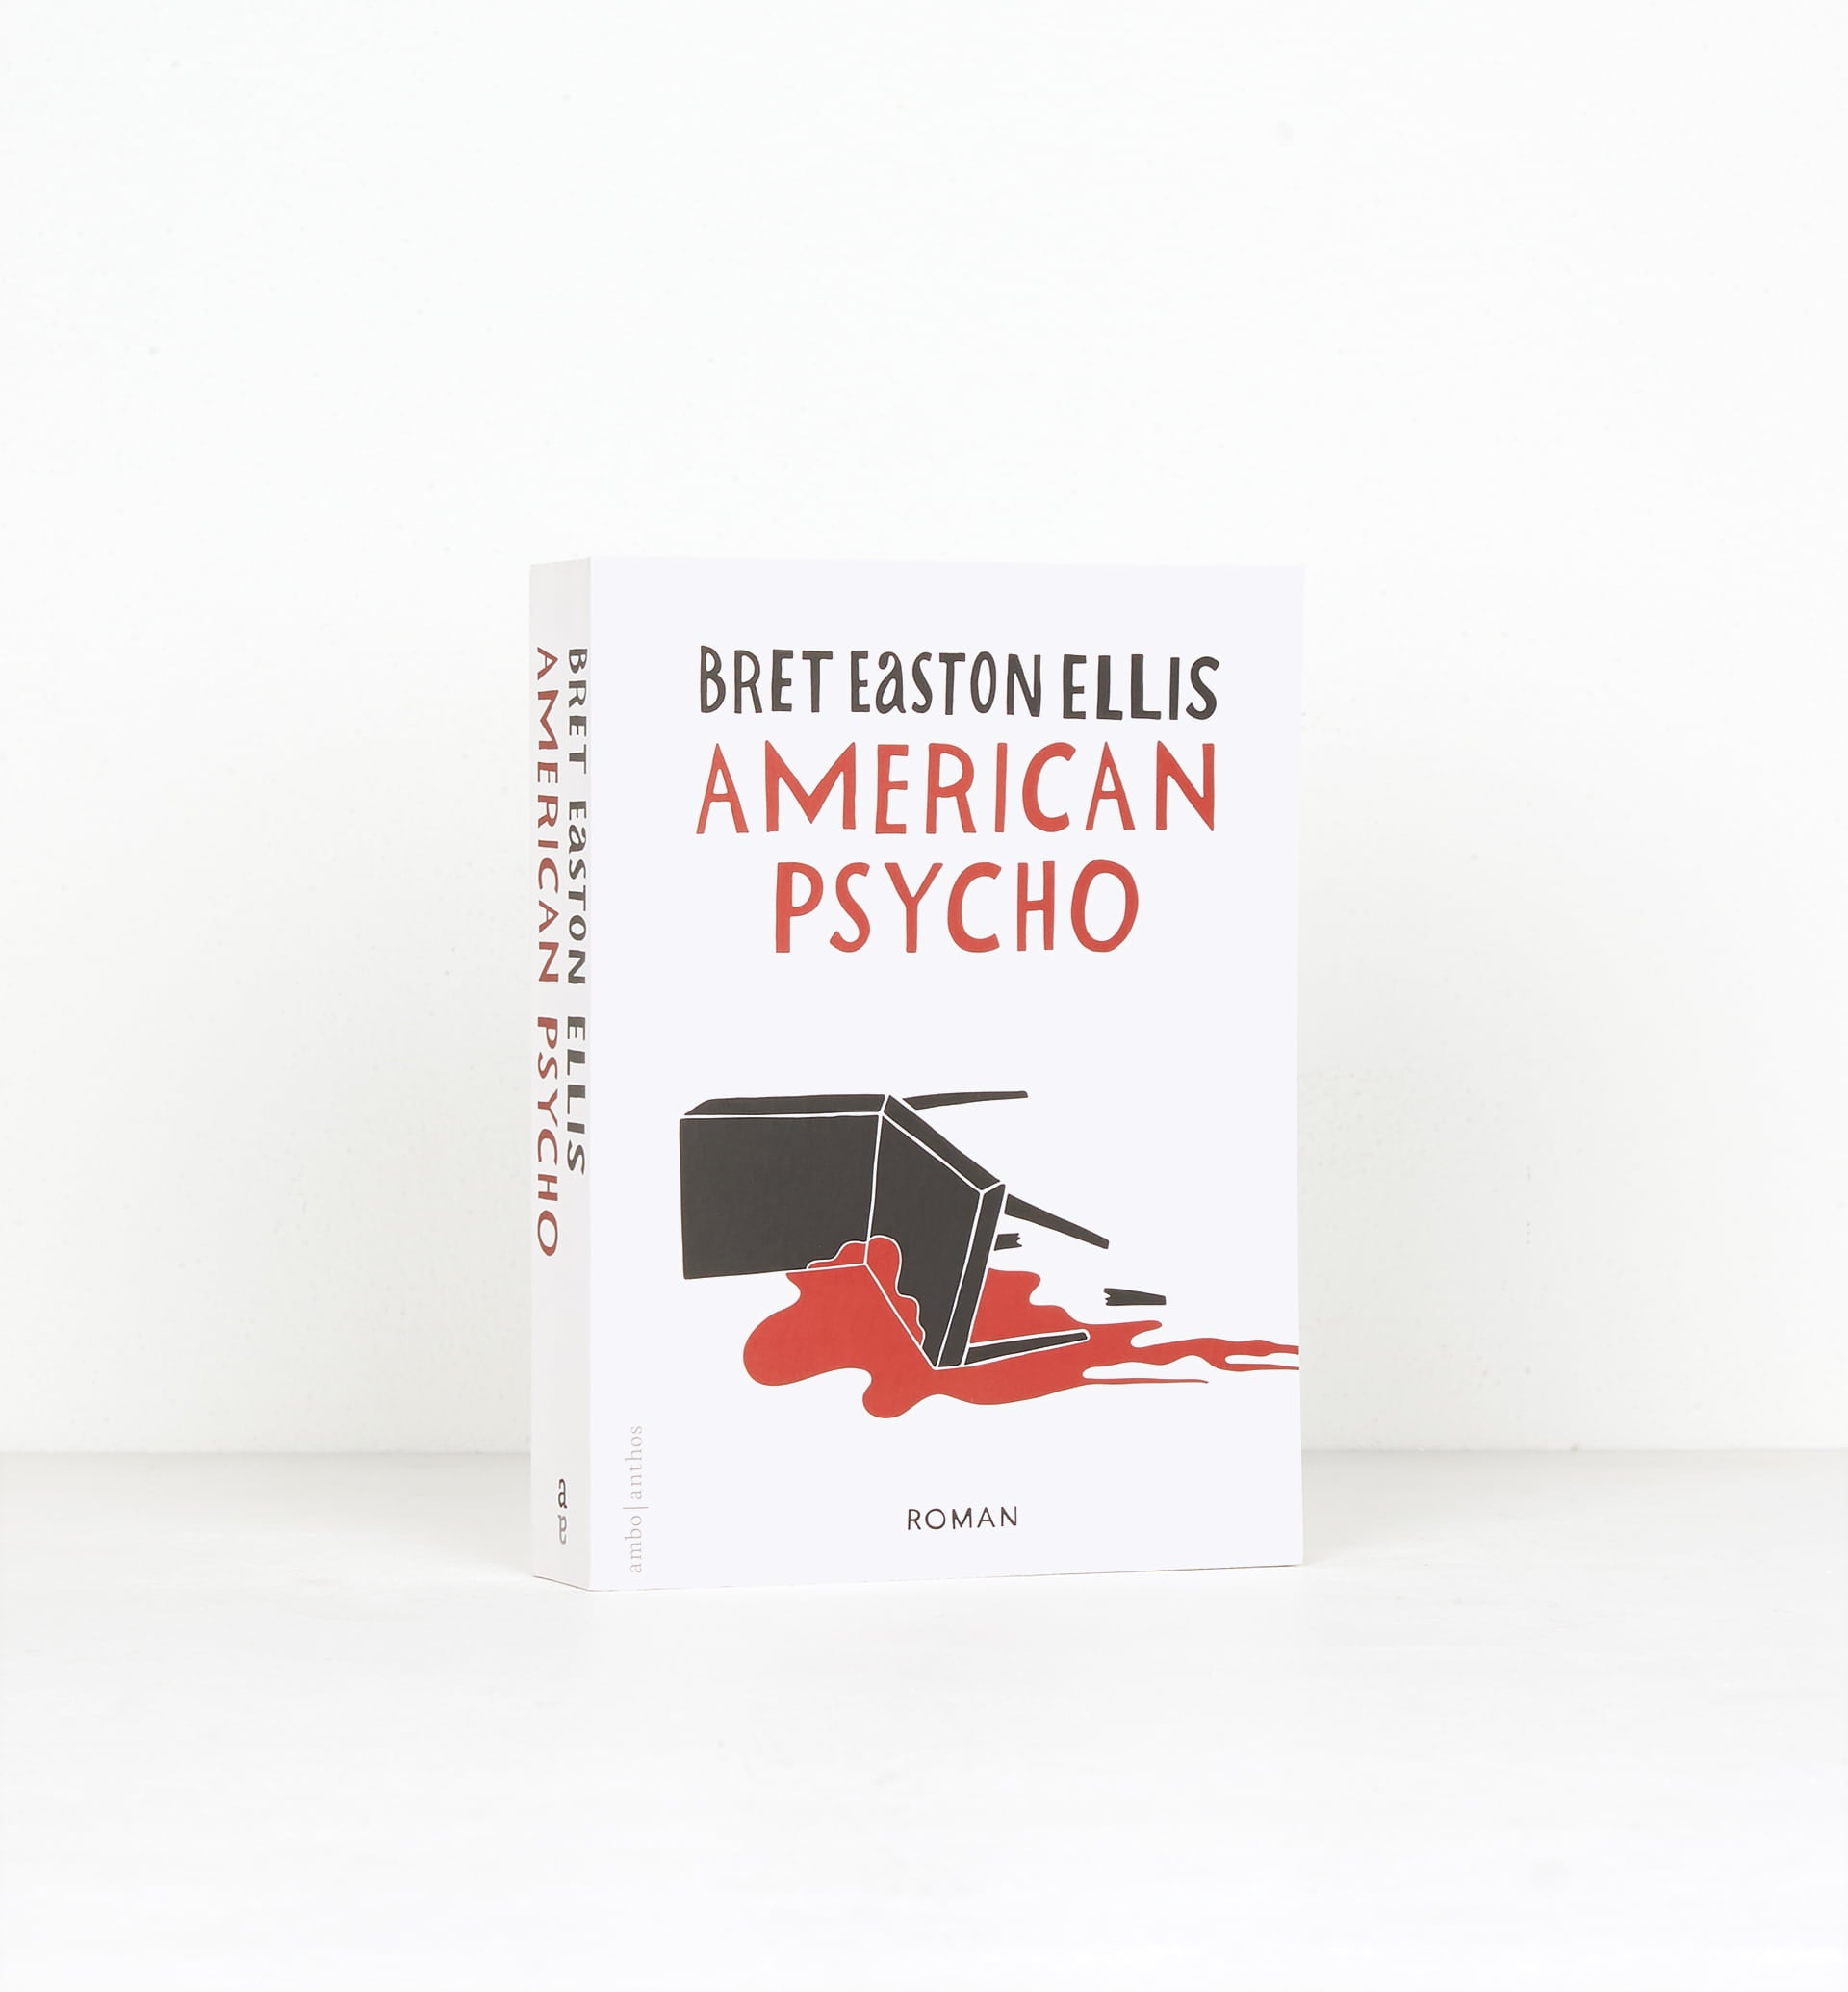 Parra - American psycho book by Bret Easton Ellis. cover by Parra(dutch translation)